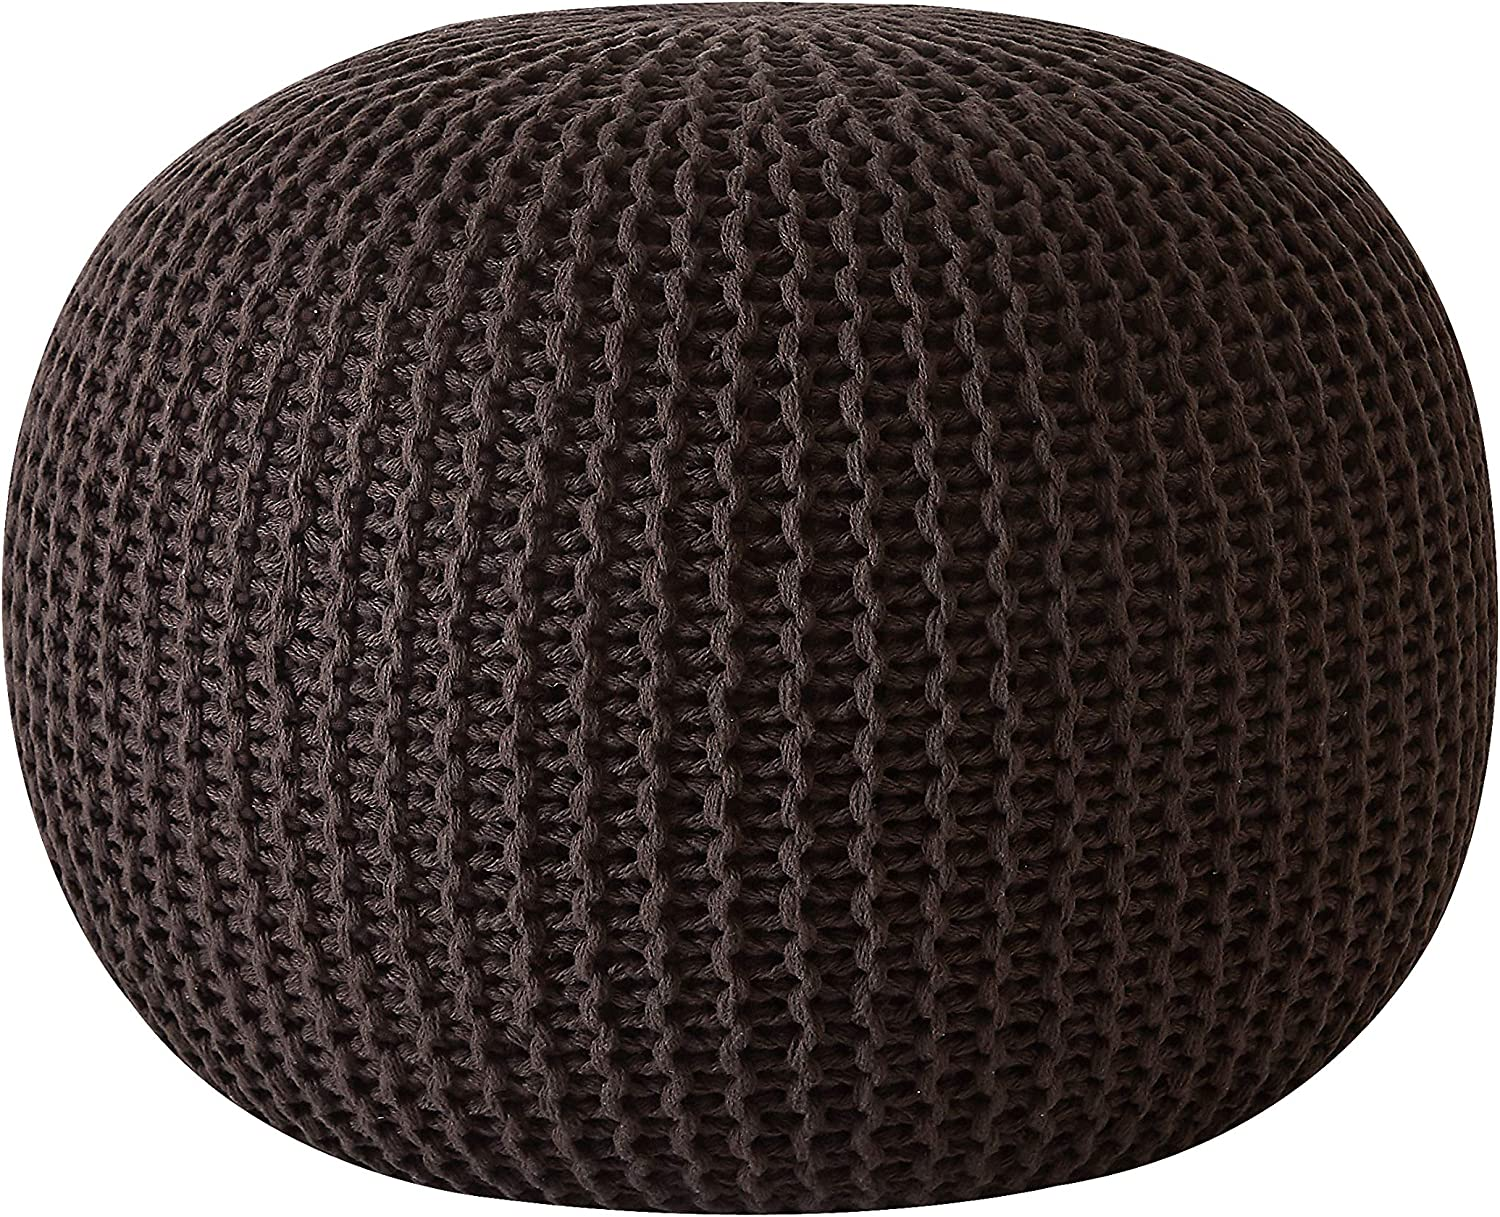 Urban Shop Round Knit Pouf - Hand Woven Cotton, Brown